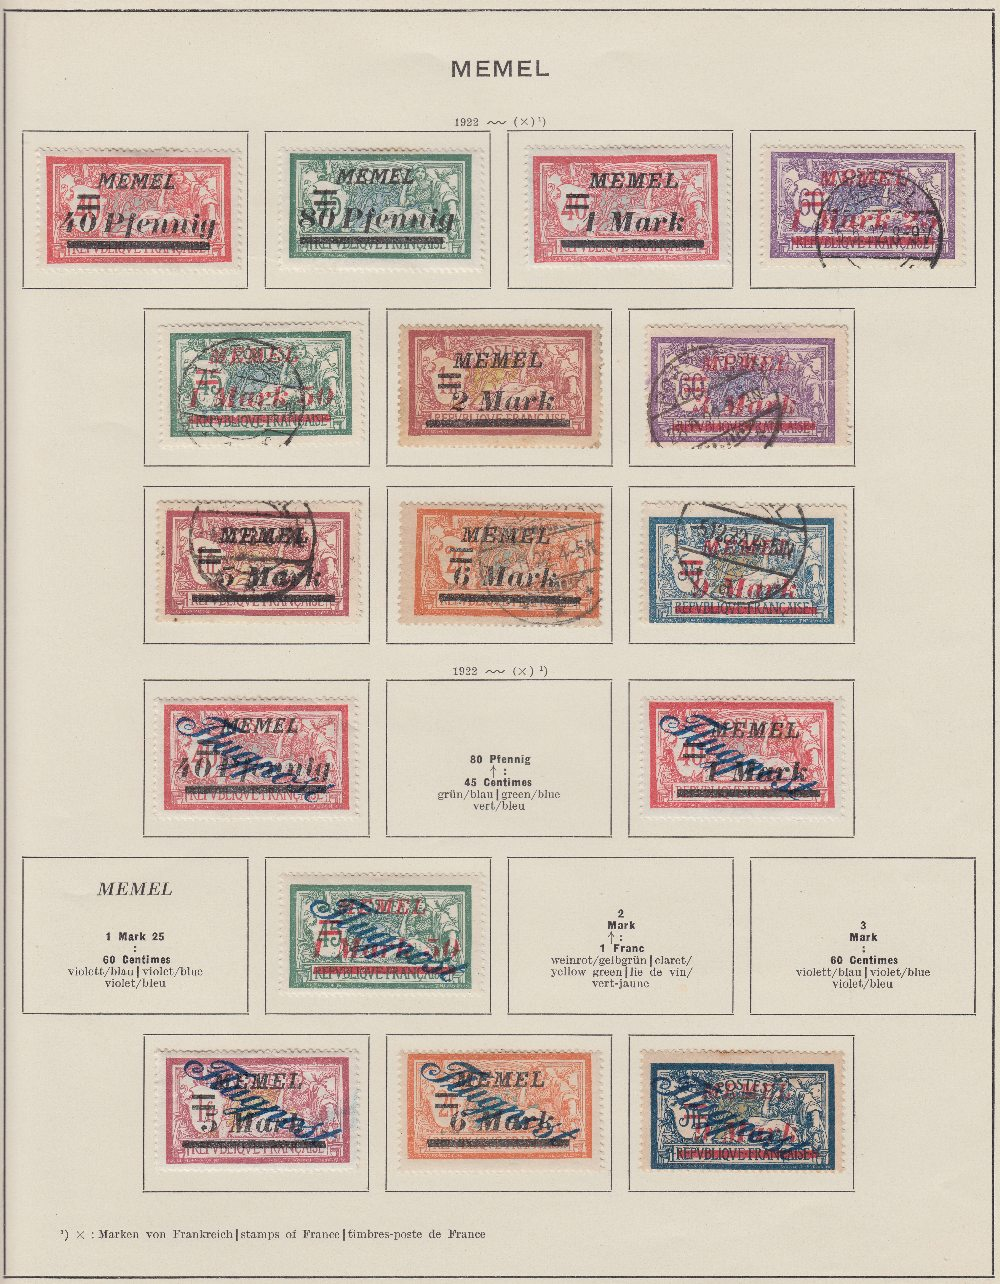 STAMPS : Two large Schaubek albums with Europe up to 1933, reasonably well filled.